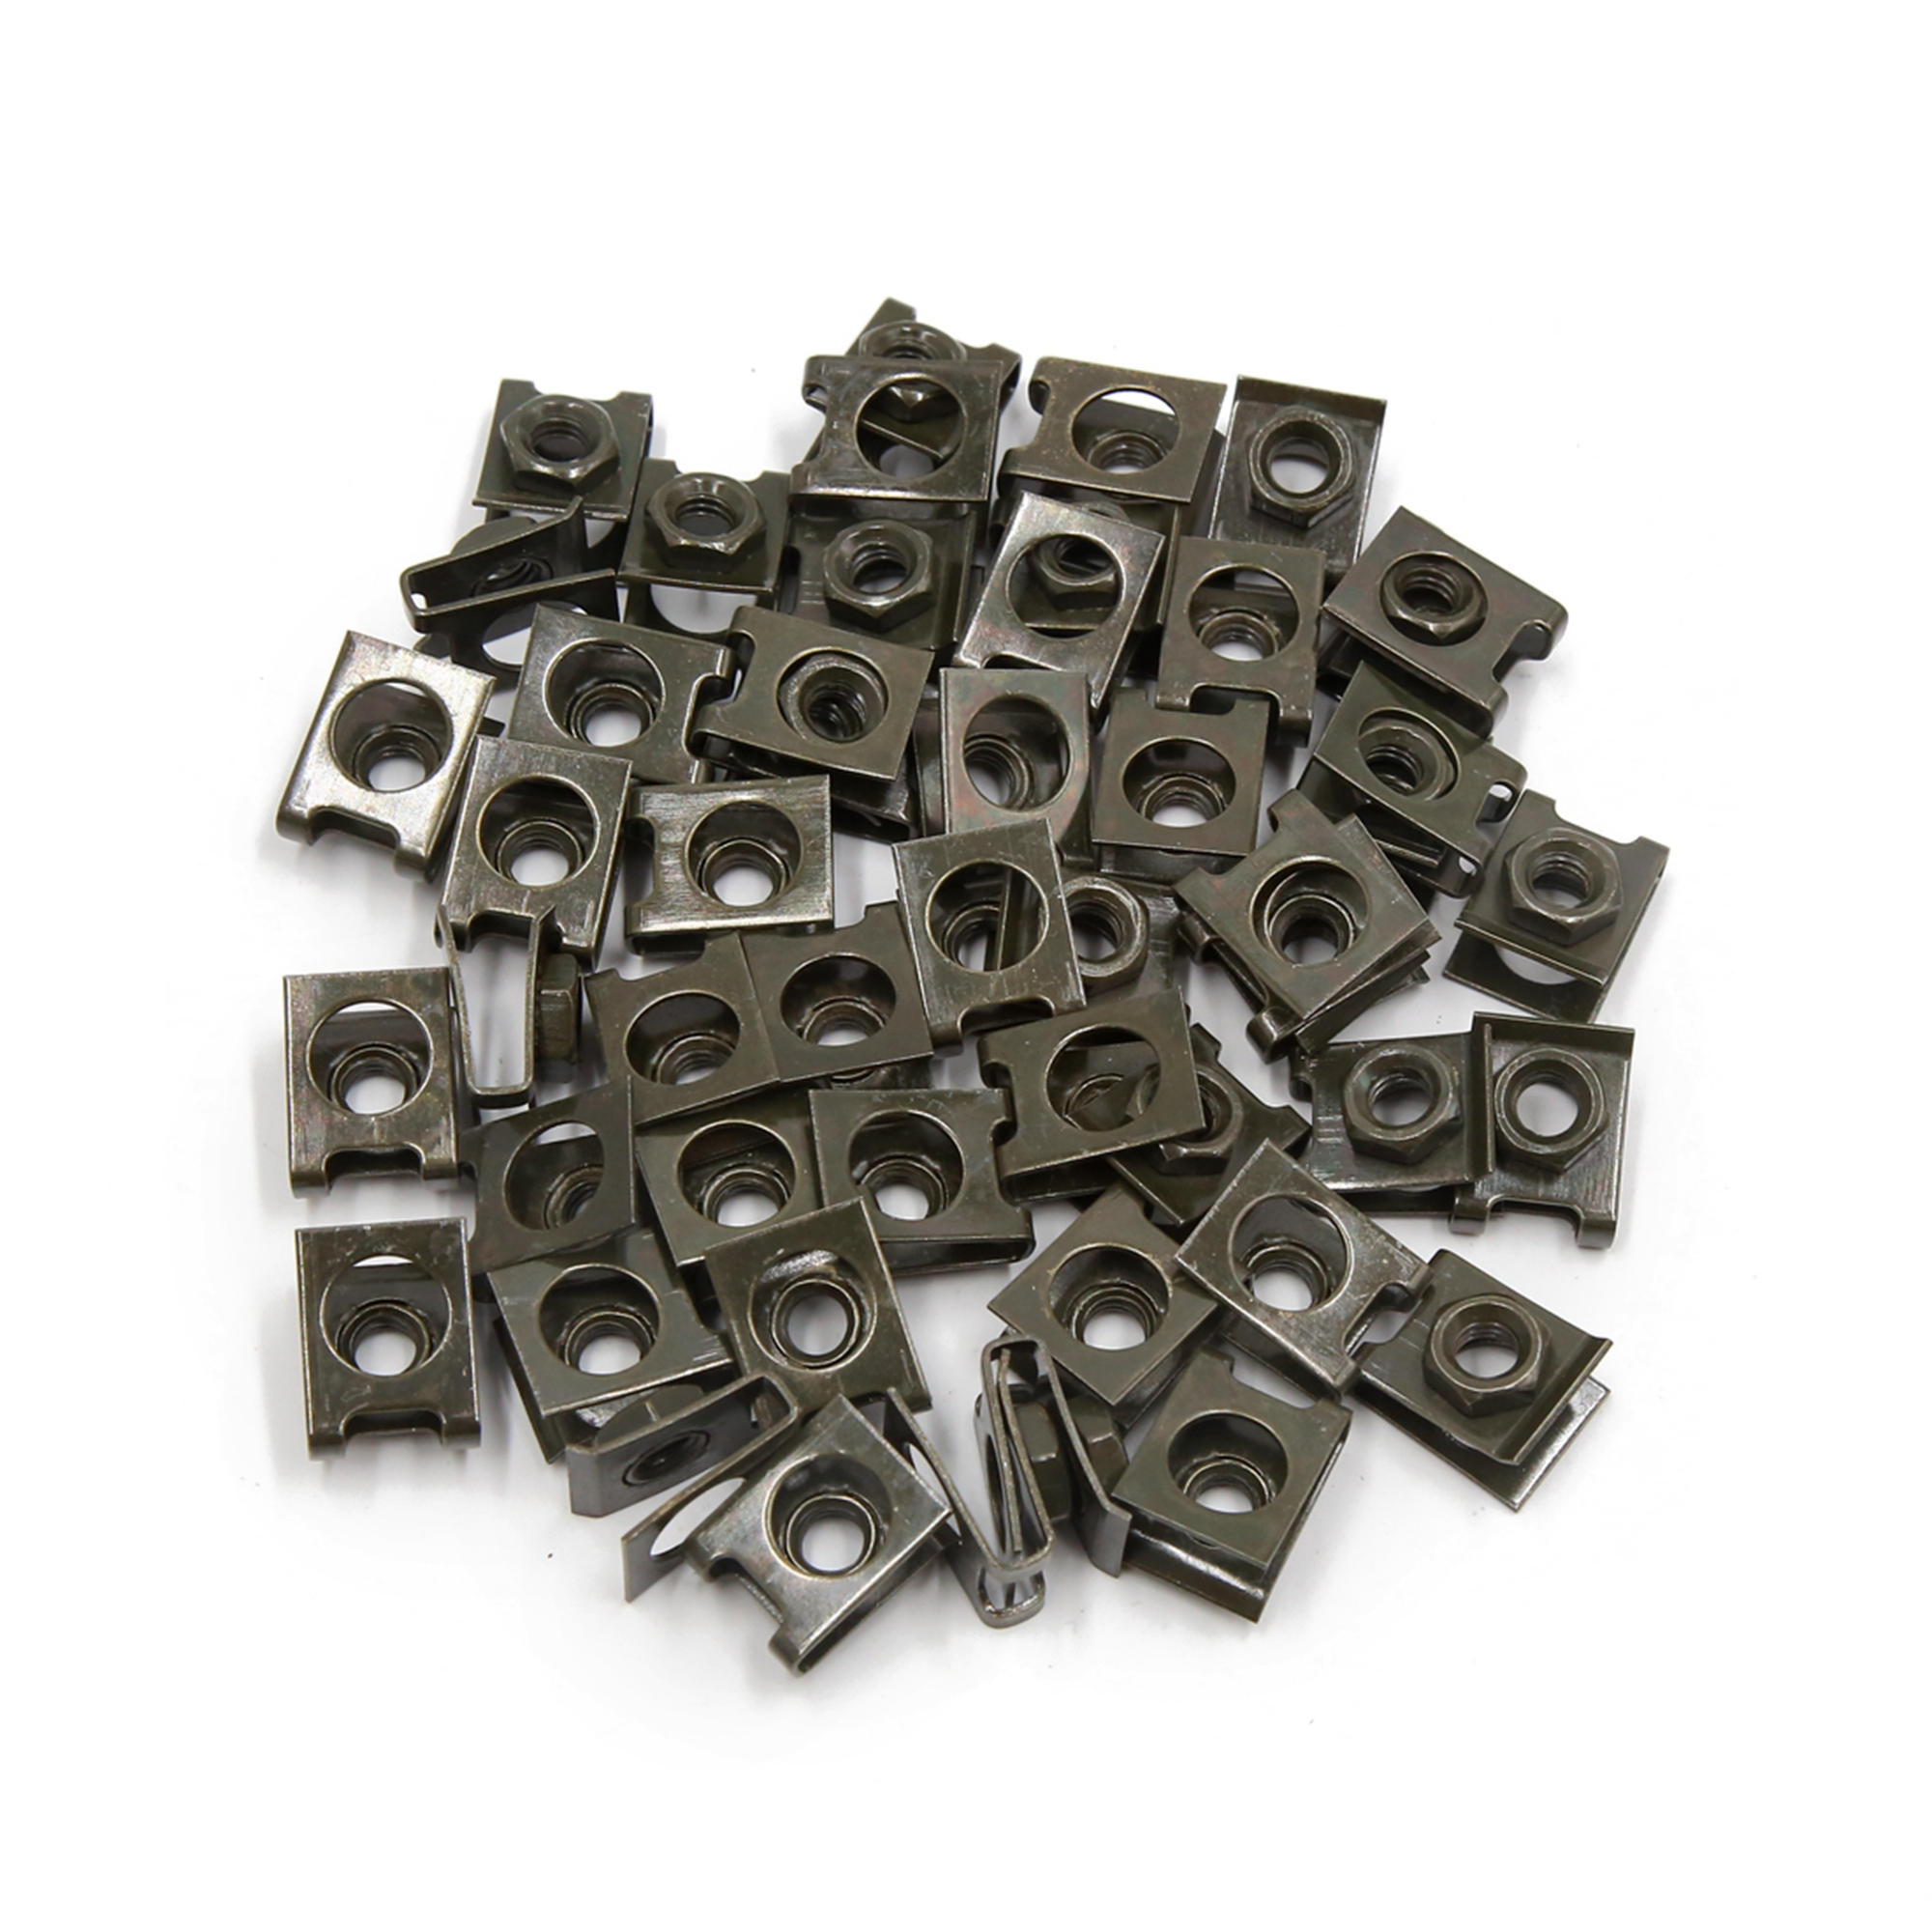 50 Pcs Dark Green Metal Motorcycle M6 U Nuts Fairing Clip Speed Fastener